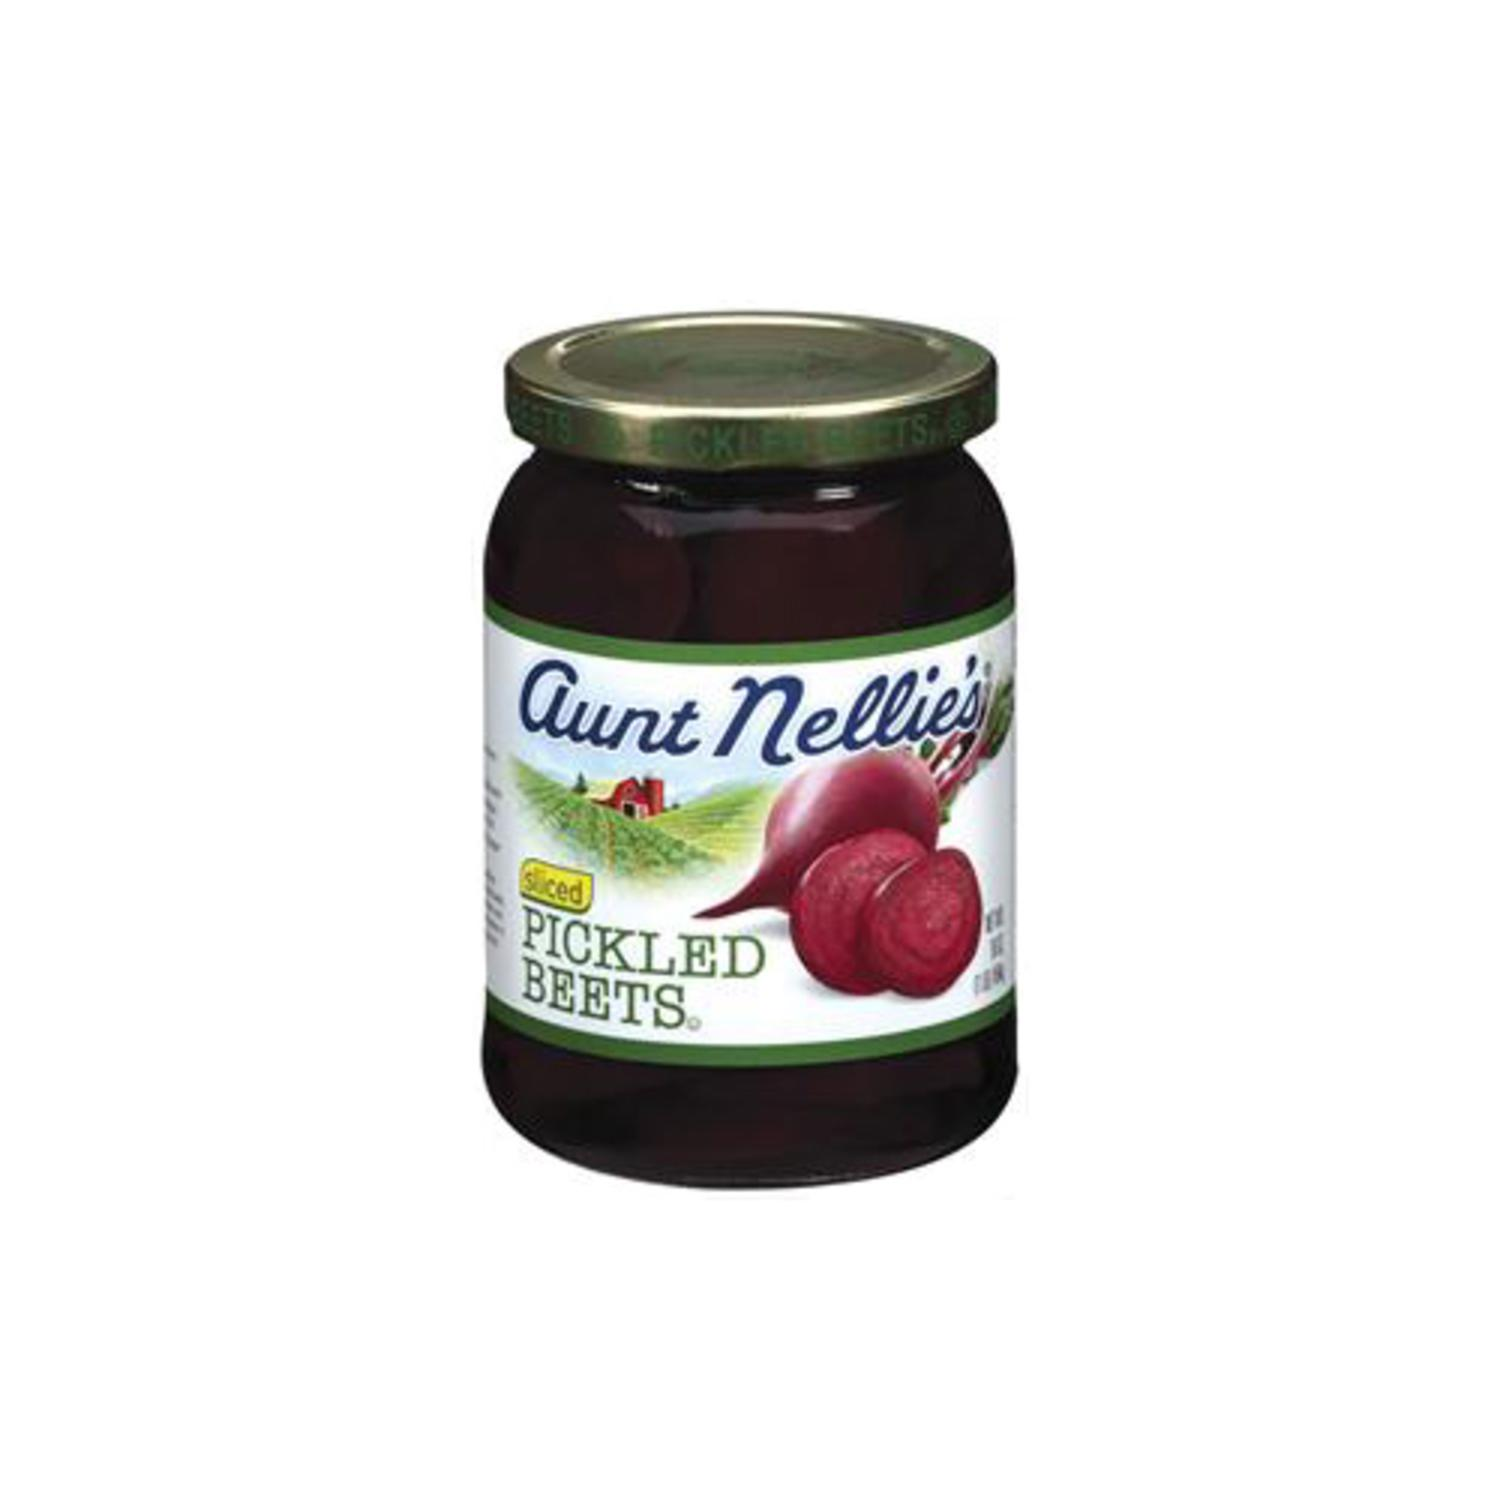 WNY's Own Aunt Nellie's Sliced Pickled Beet Vegetables 16 Oz. by Aunt Nellie's